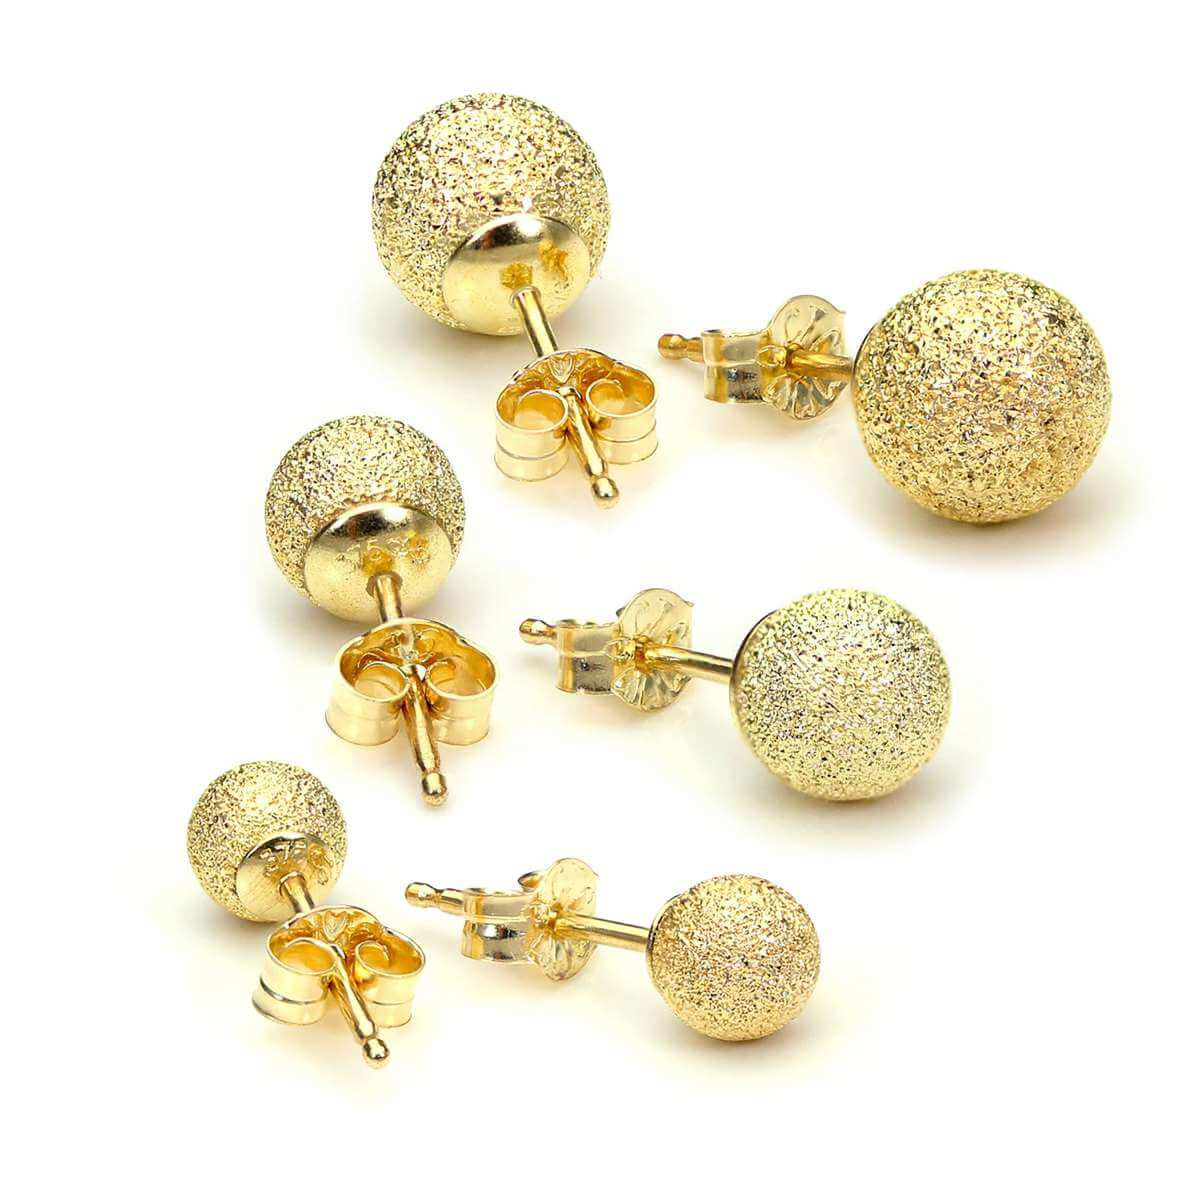 Triple 9ct Gold Frosted 4 5 & 6mm Ball Stud Earrings Set